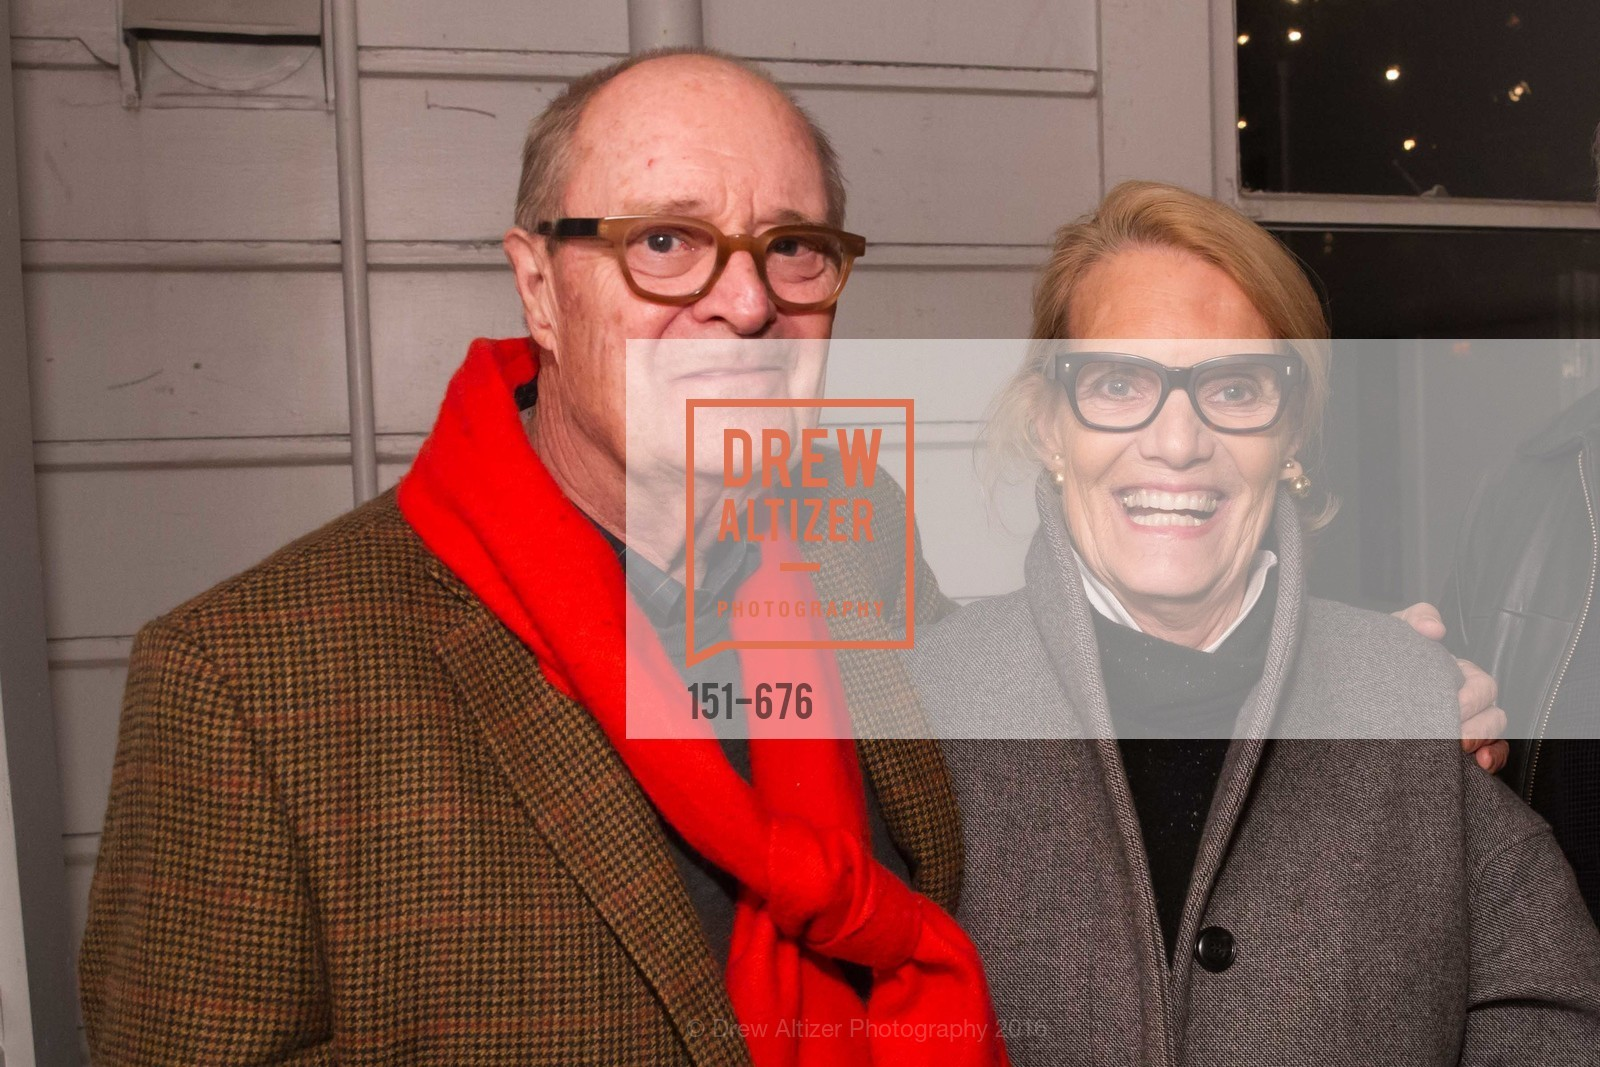 Robert Fisher Peggy Knickerbocker, 500 Capp Street Preview Reception, 500 Capp Street Foundation. 500 Capp Street, January 7th, 2016,Drew Altizer, Drew Altizer Photography, full-service agency, private events, San Francisco photographer, photographer california